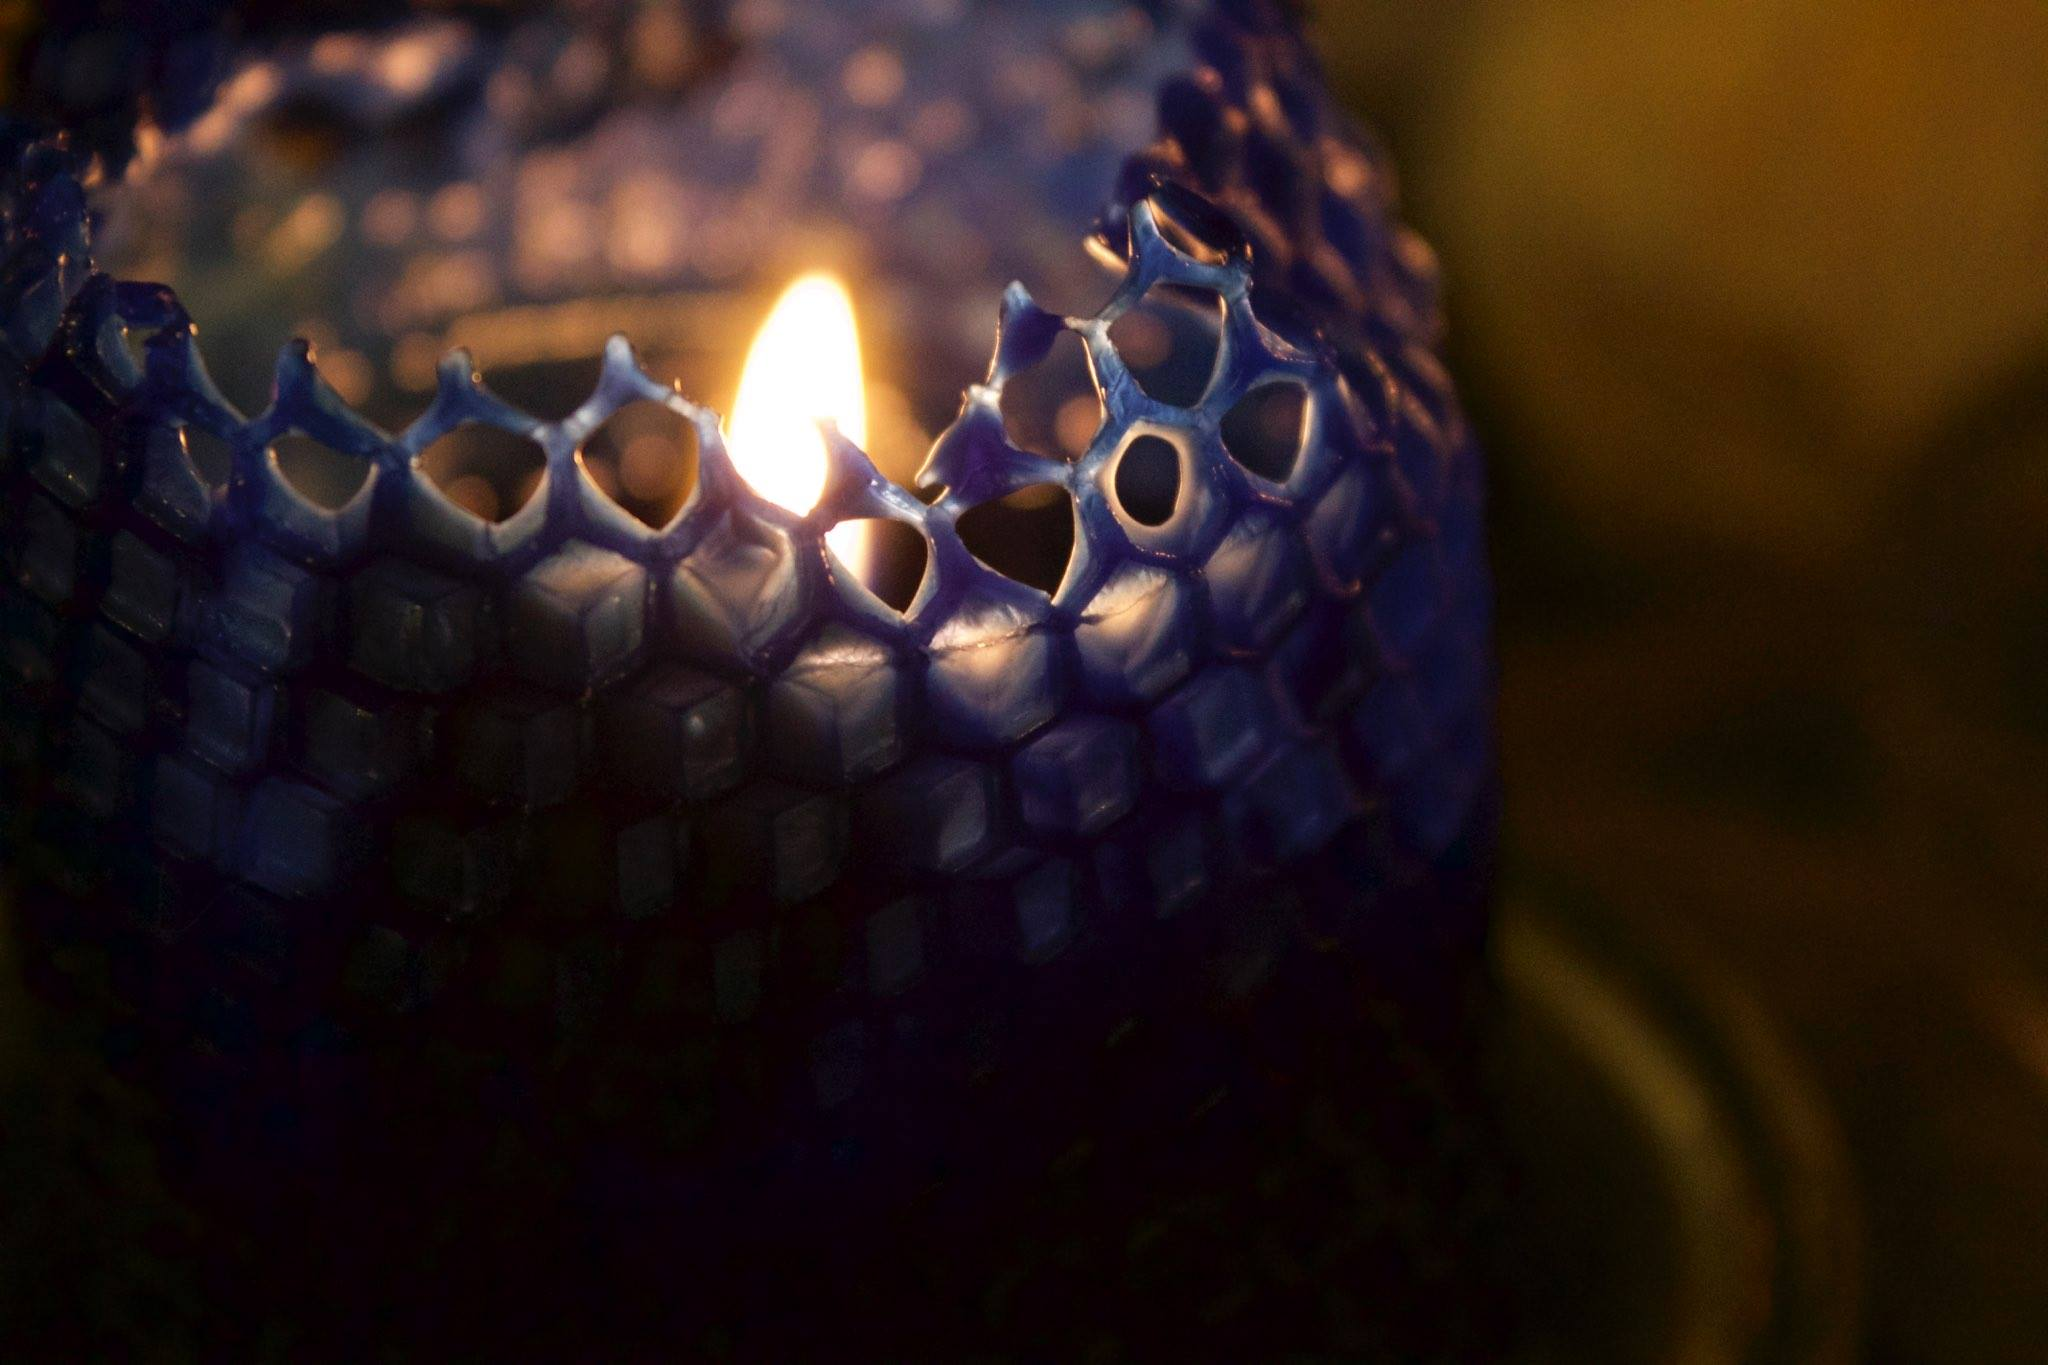 Blue beeswax candles